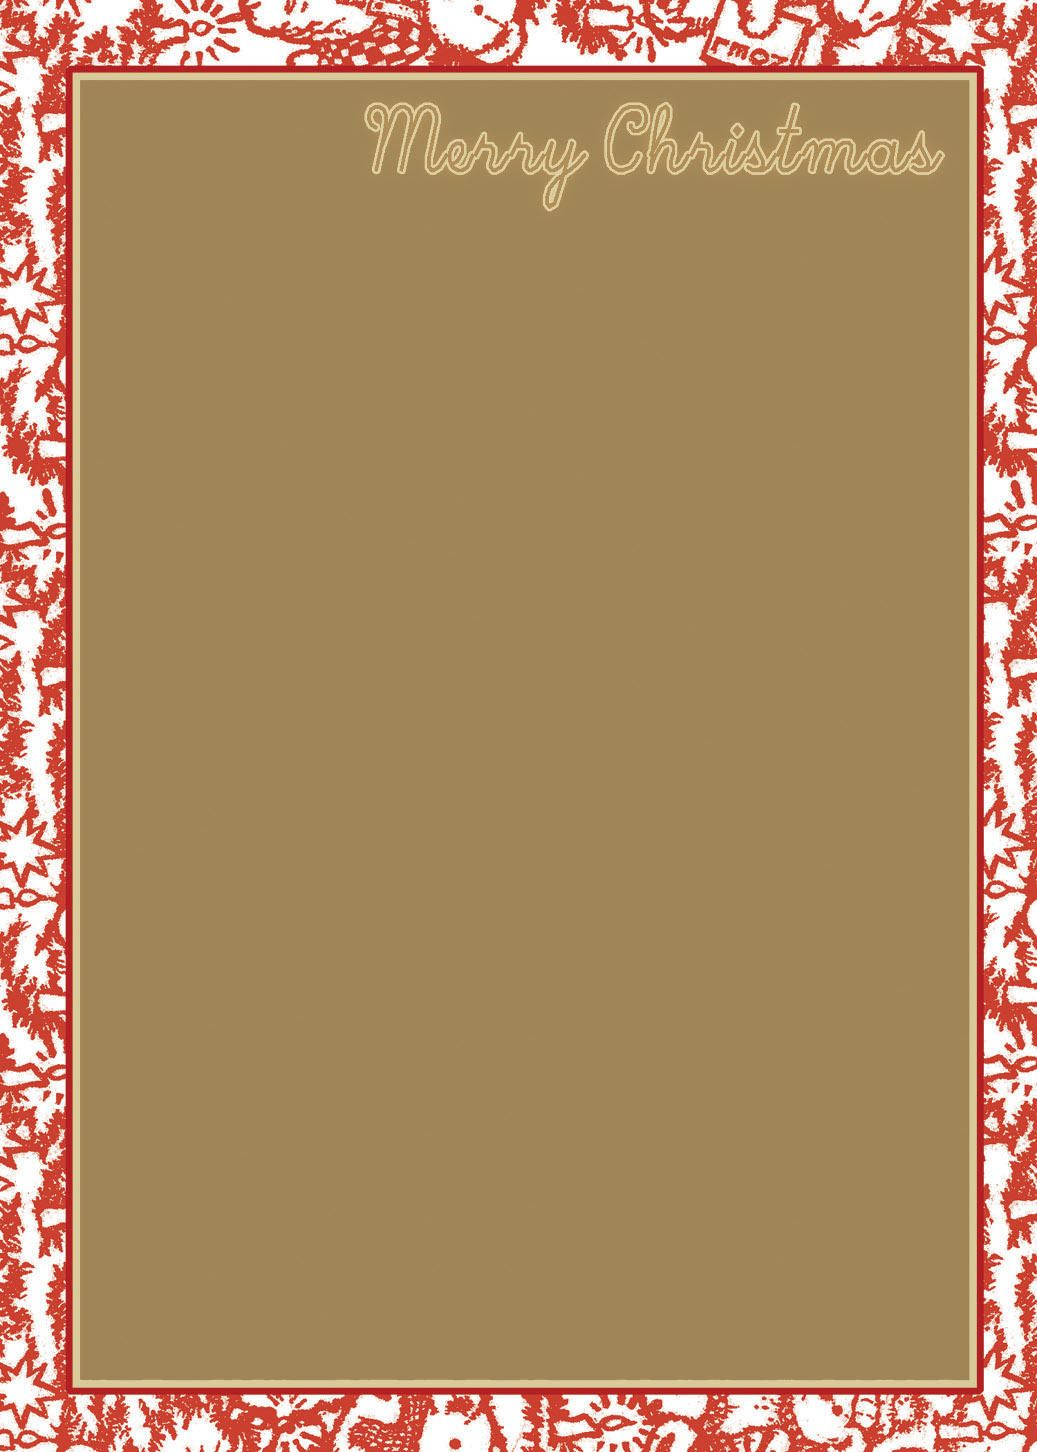 holiday stationery templates printable holiday stationery templates printable christmas border templates